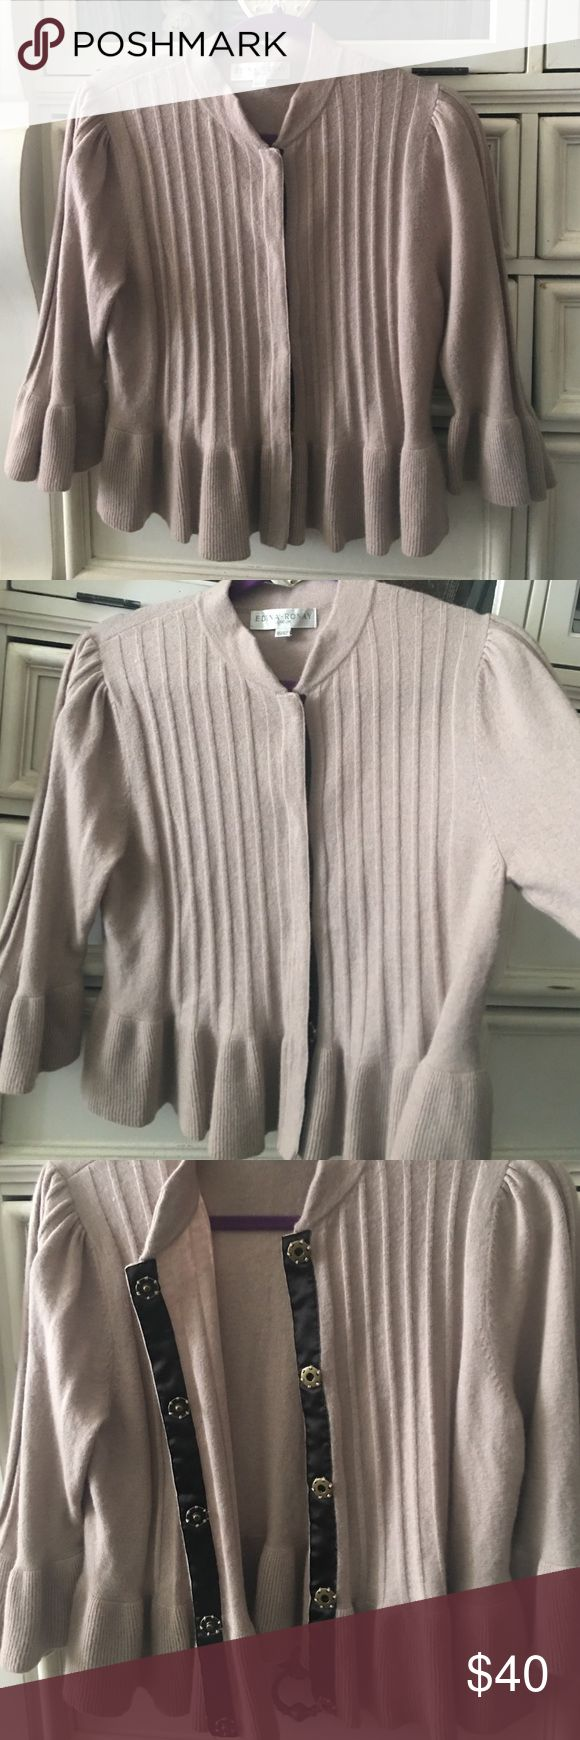 ❌ Sale ❌ Delicate cardigan, by Edina Ronay London. Puffed shoulder, bell sleeve 50% wool, 40% nylon 10% angora. United Kingdom size 16 is a 12/14 USA by designer Edina Ronay of London. Beautifully made. Edina Ronay Sweaters Cardigans